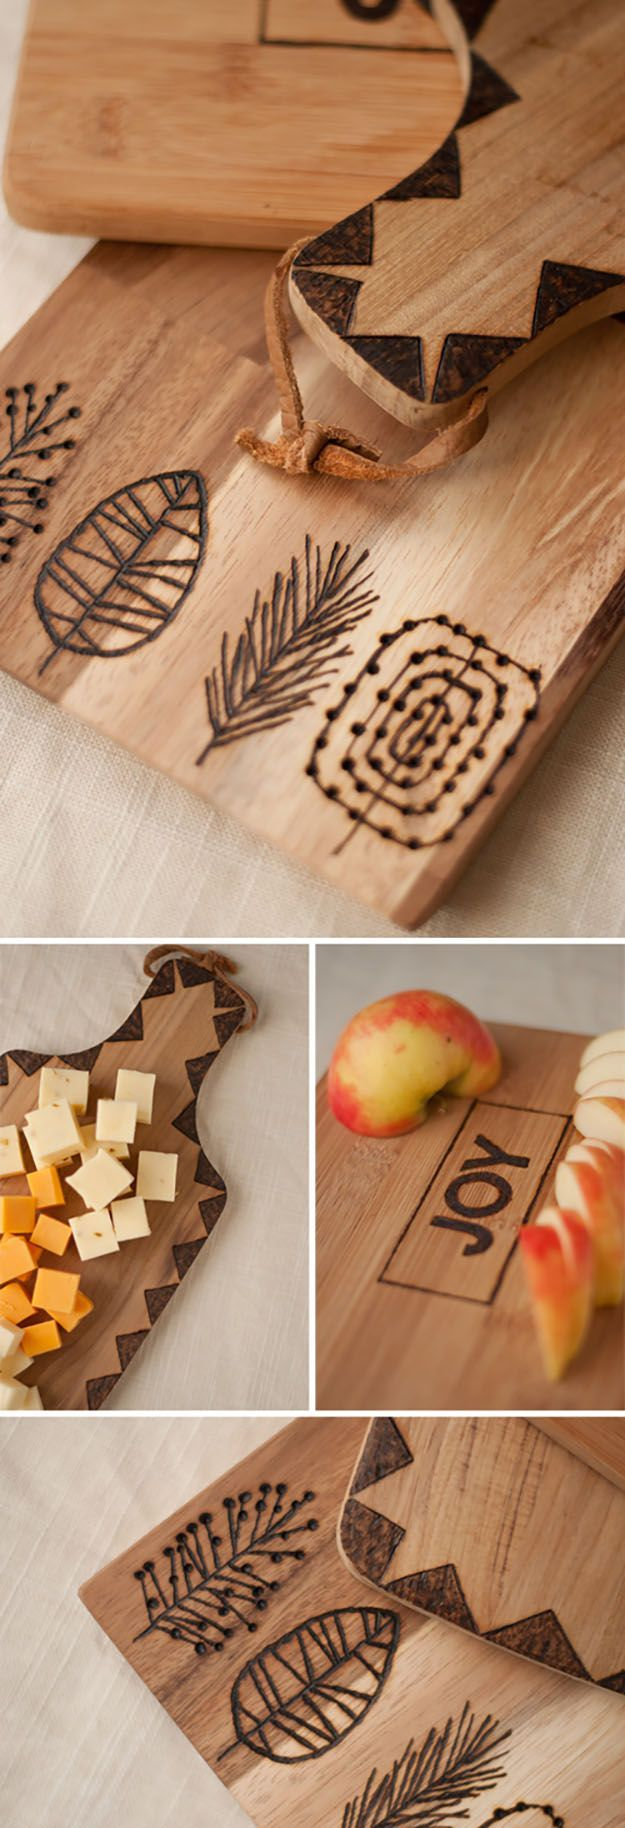 DIY Gifts for Friends & Family | DIY Kitchen Ideas | Etched Wooden Cutting Boards | DIY Projects & Crafts by DIY JOY